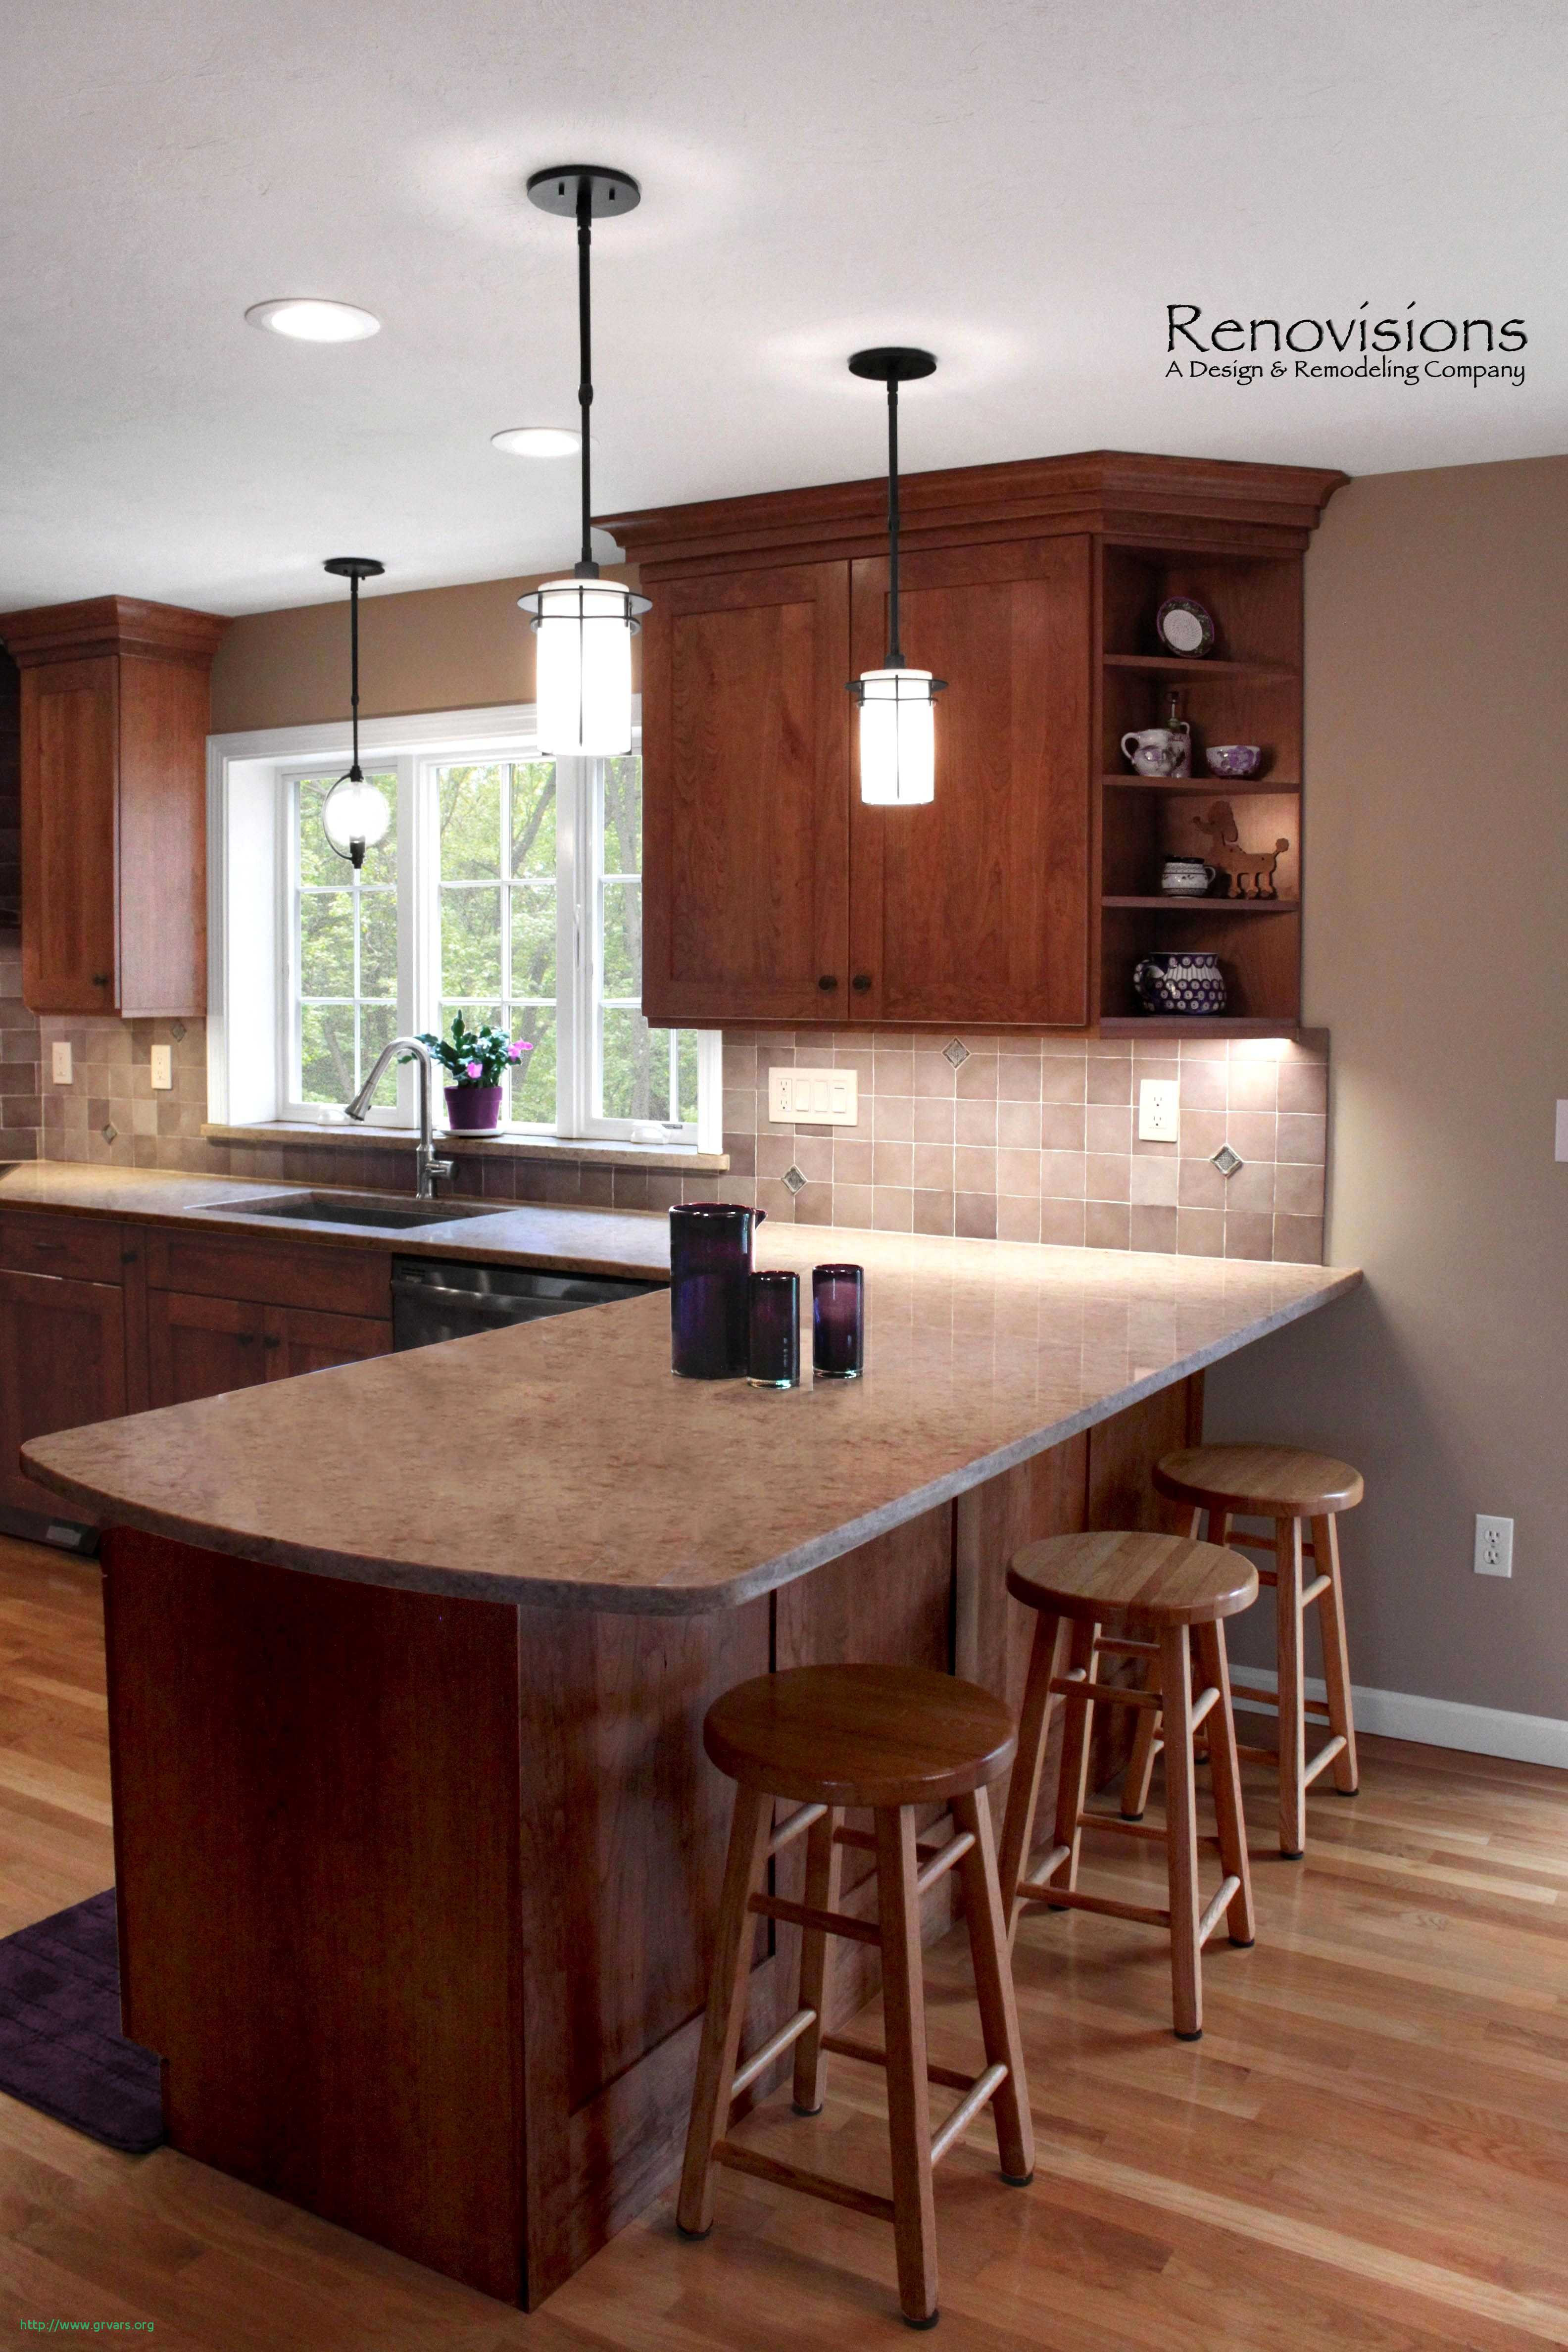 The Woods Company Hardwood Flooring Of 17 Meilleur De What Color Cabinets Go with Light Wood Floors Ideas with Quality Kitchen Cabinets Best Colors for Kitchen Cabinets Unique Kitchen Cabinet 0d Kitchen Sink